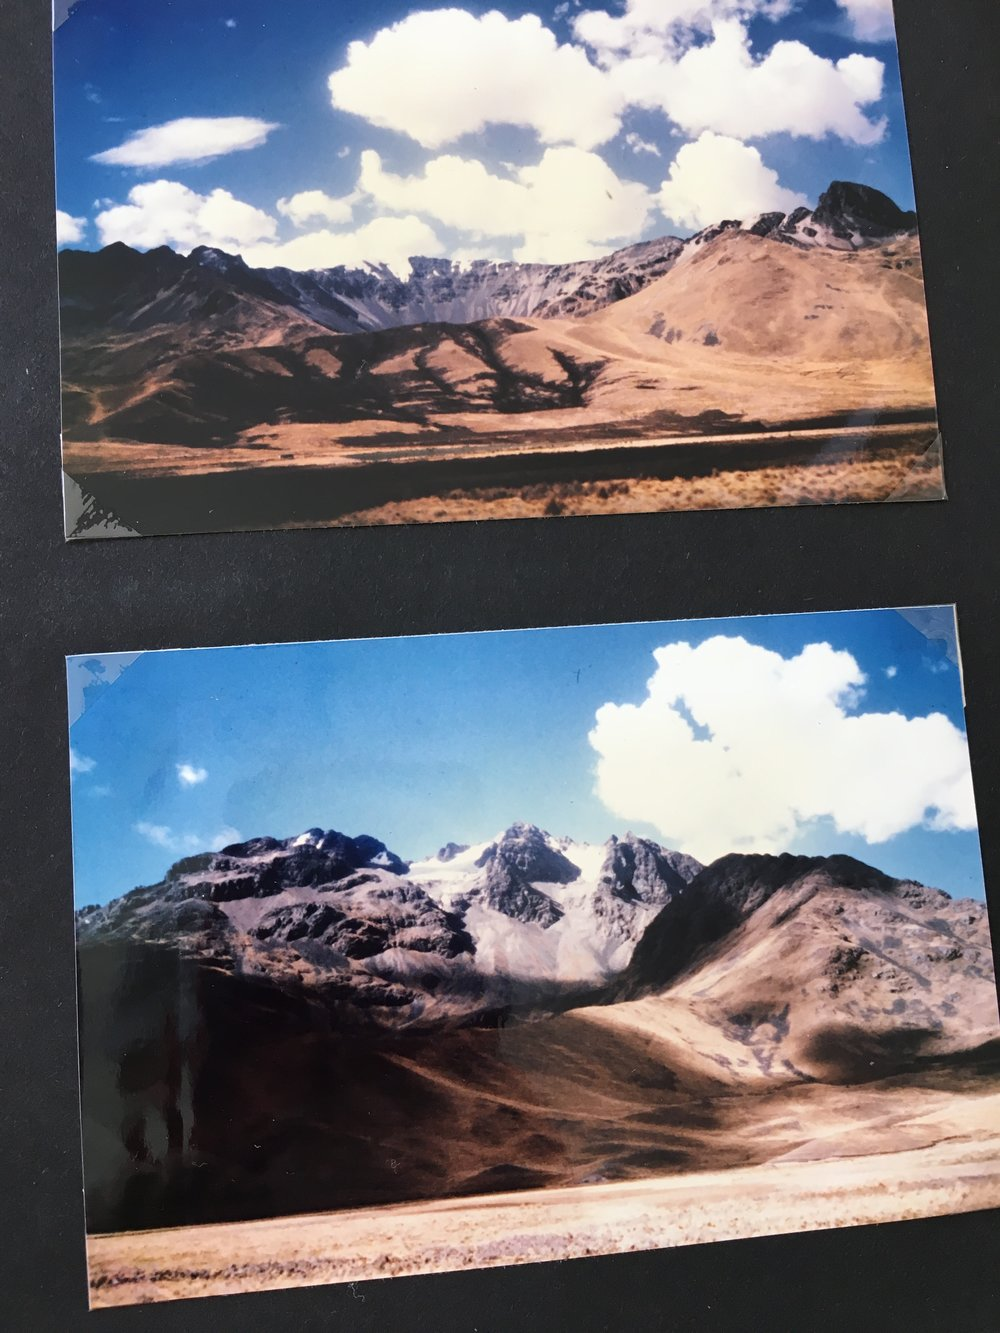 on the way to Cusco, Peru in 1987